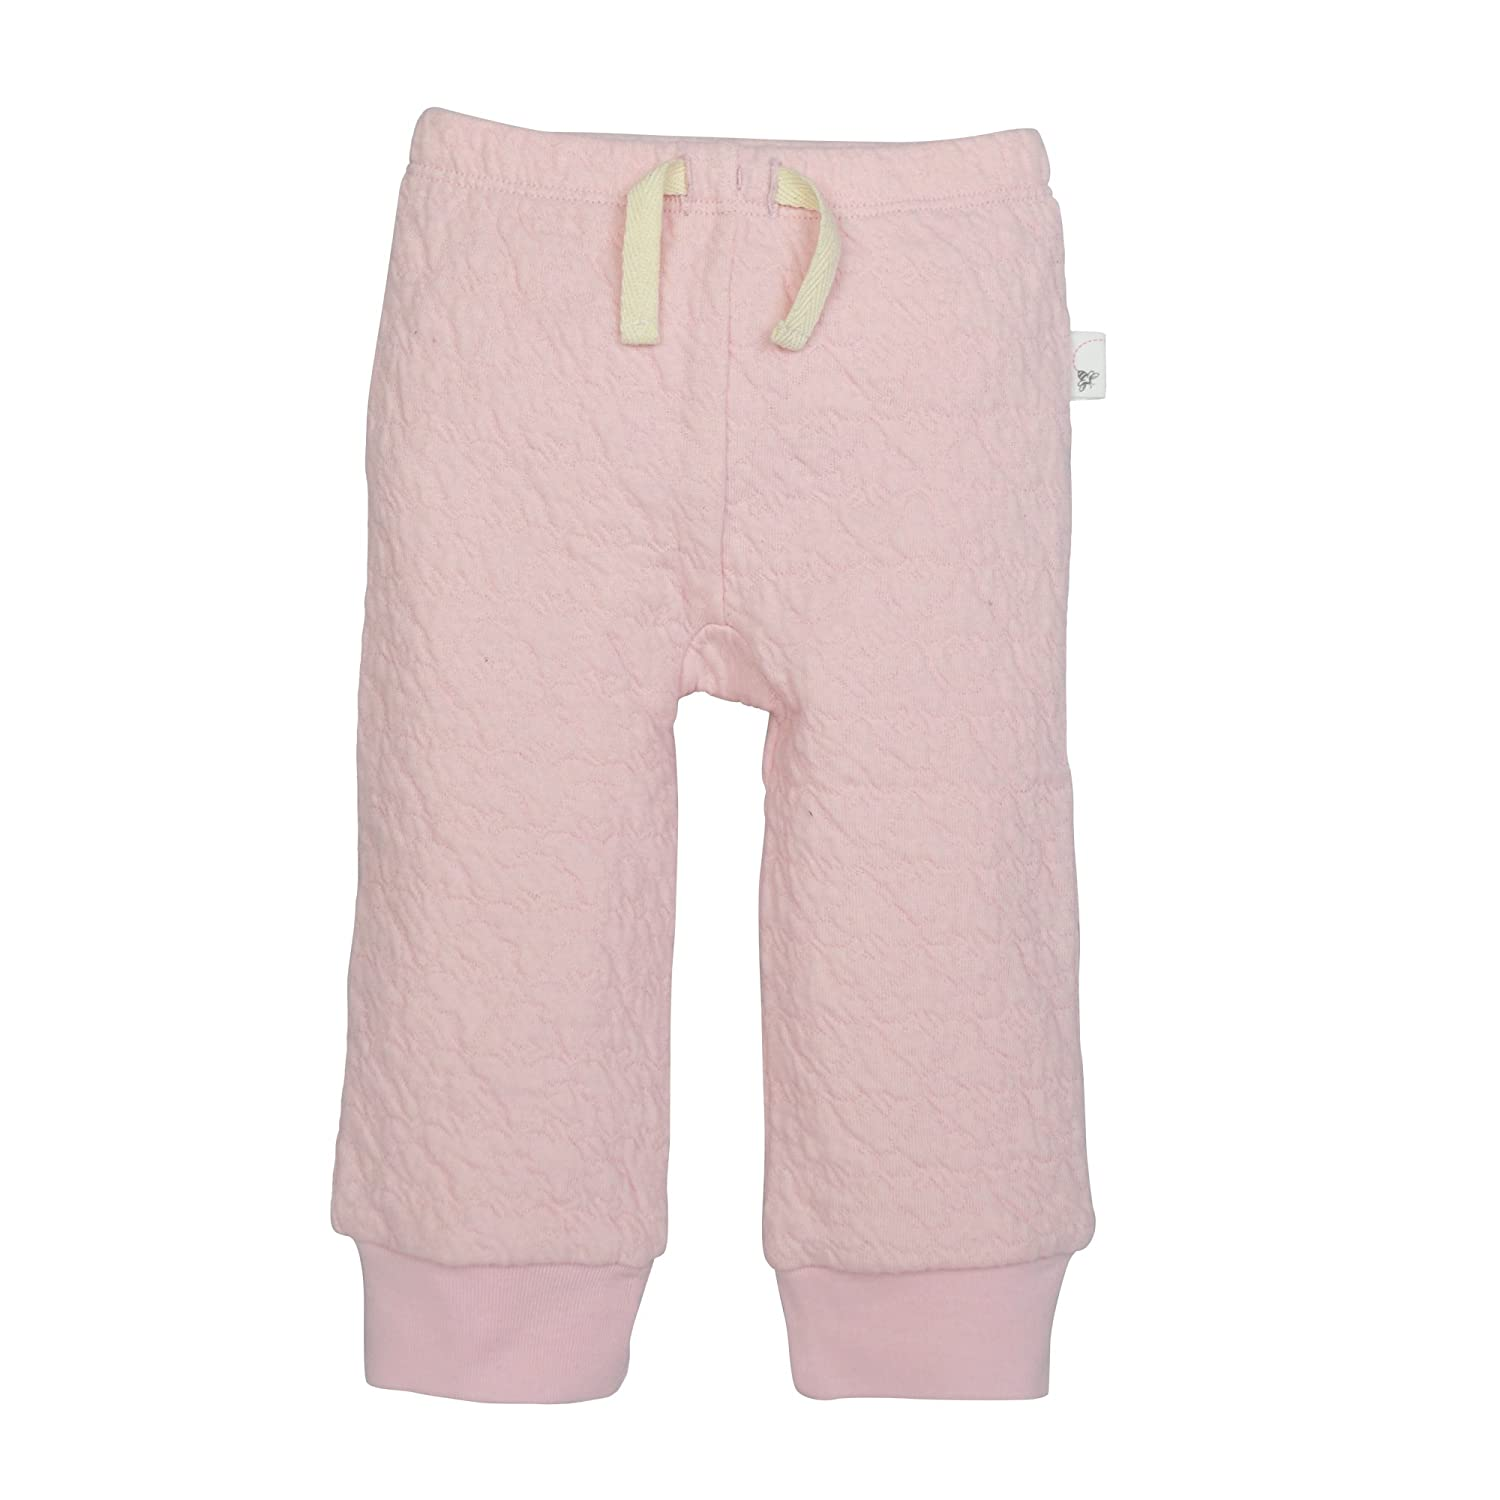 0bcdaf6c93 100% Cotton Imported Pull On closure. Machine Wash Encased elastic  waistband - gentle on little tummies. Allows your baby room to grow. Good  fit over cloth ...